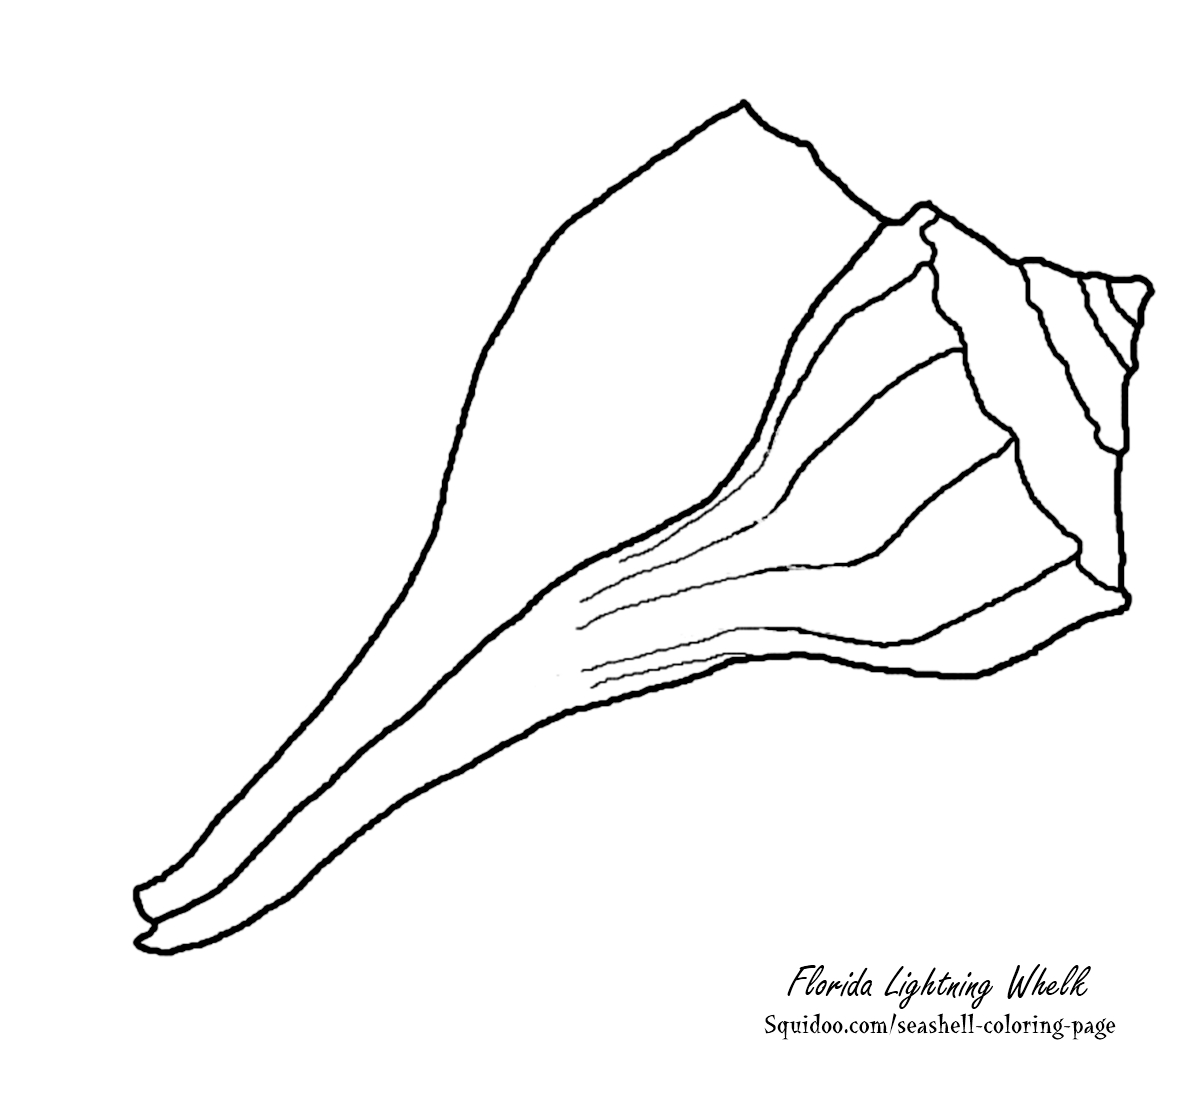 Scribbles Drawing And Coloring Book : Conch shell outline cliparts